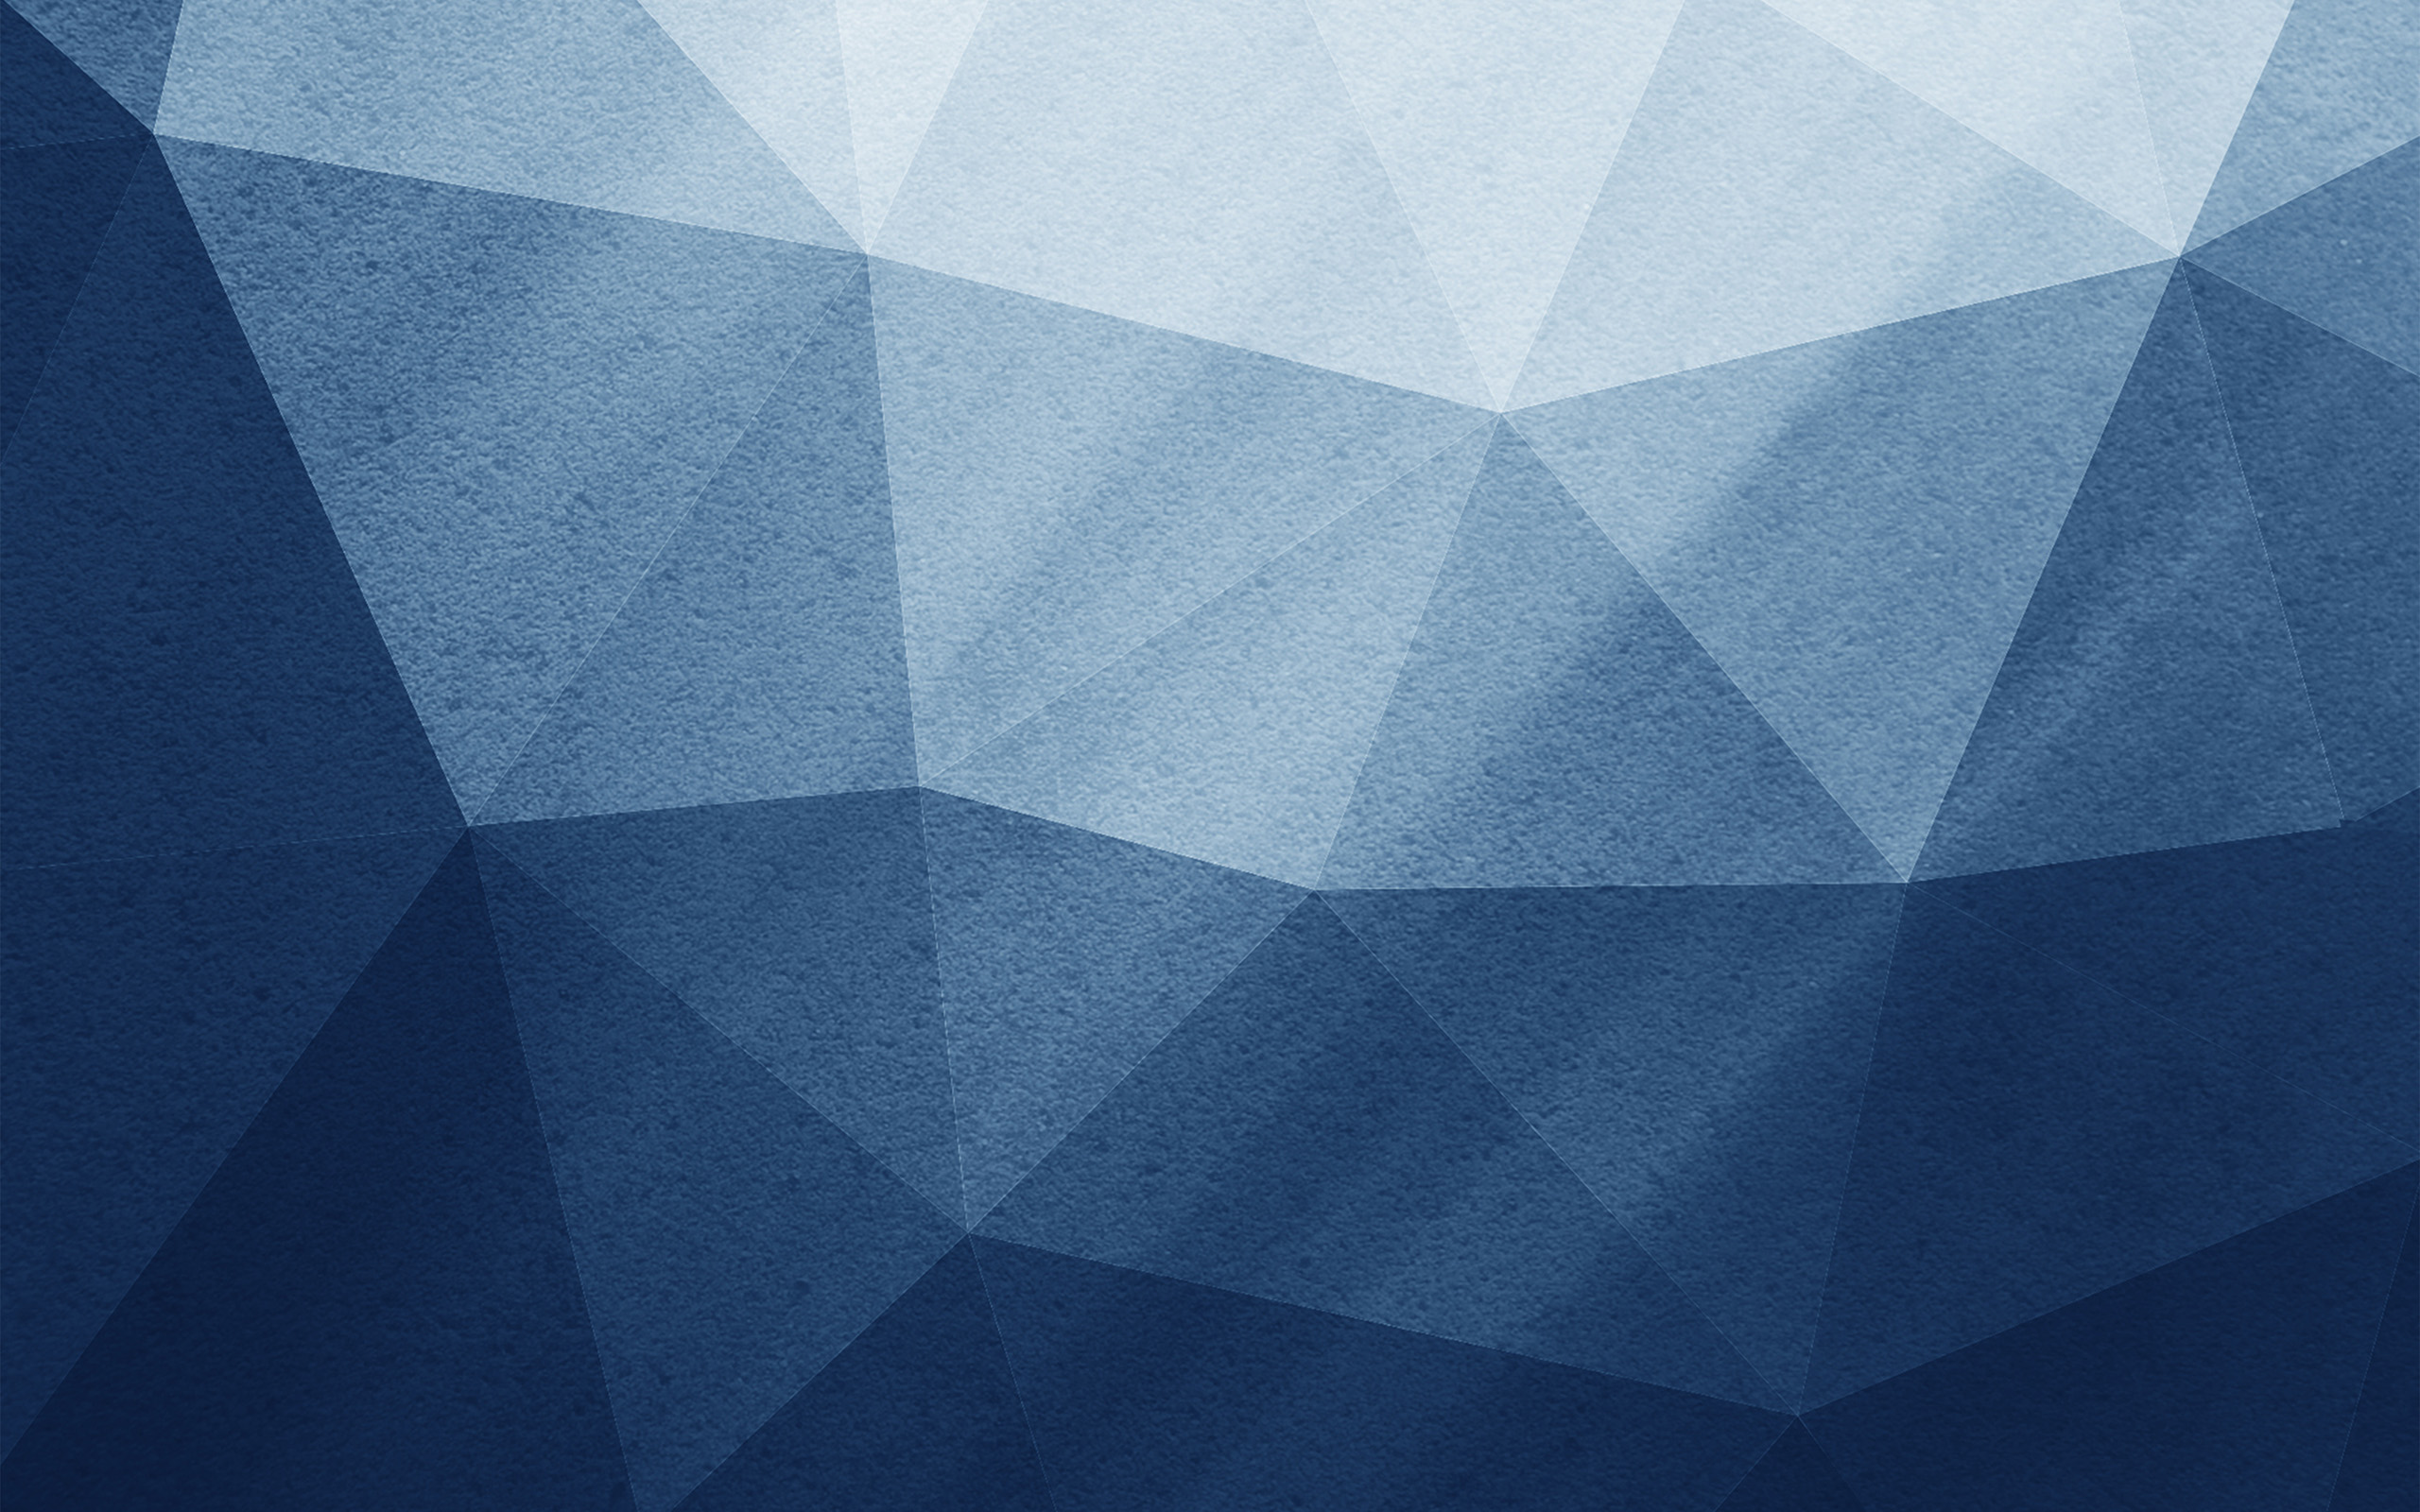 Car Hd Wallpaper For Iphone Vz49 Polygon Blue Texture Abstract Pattern Background